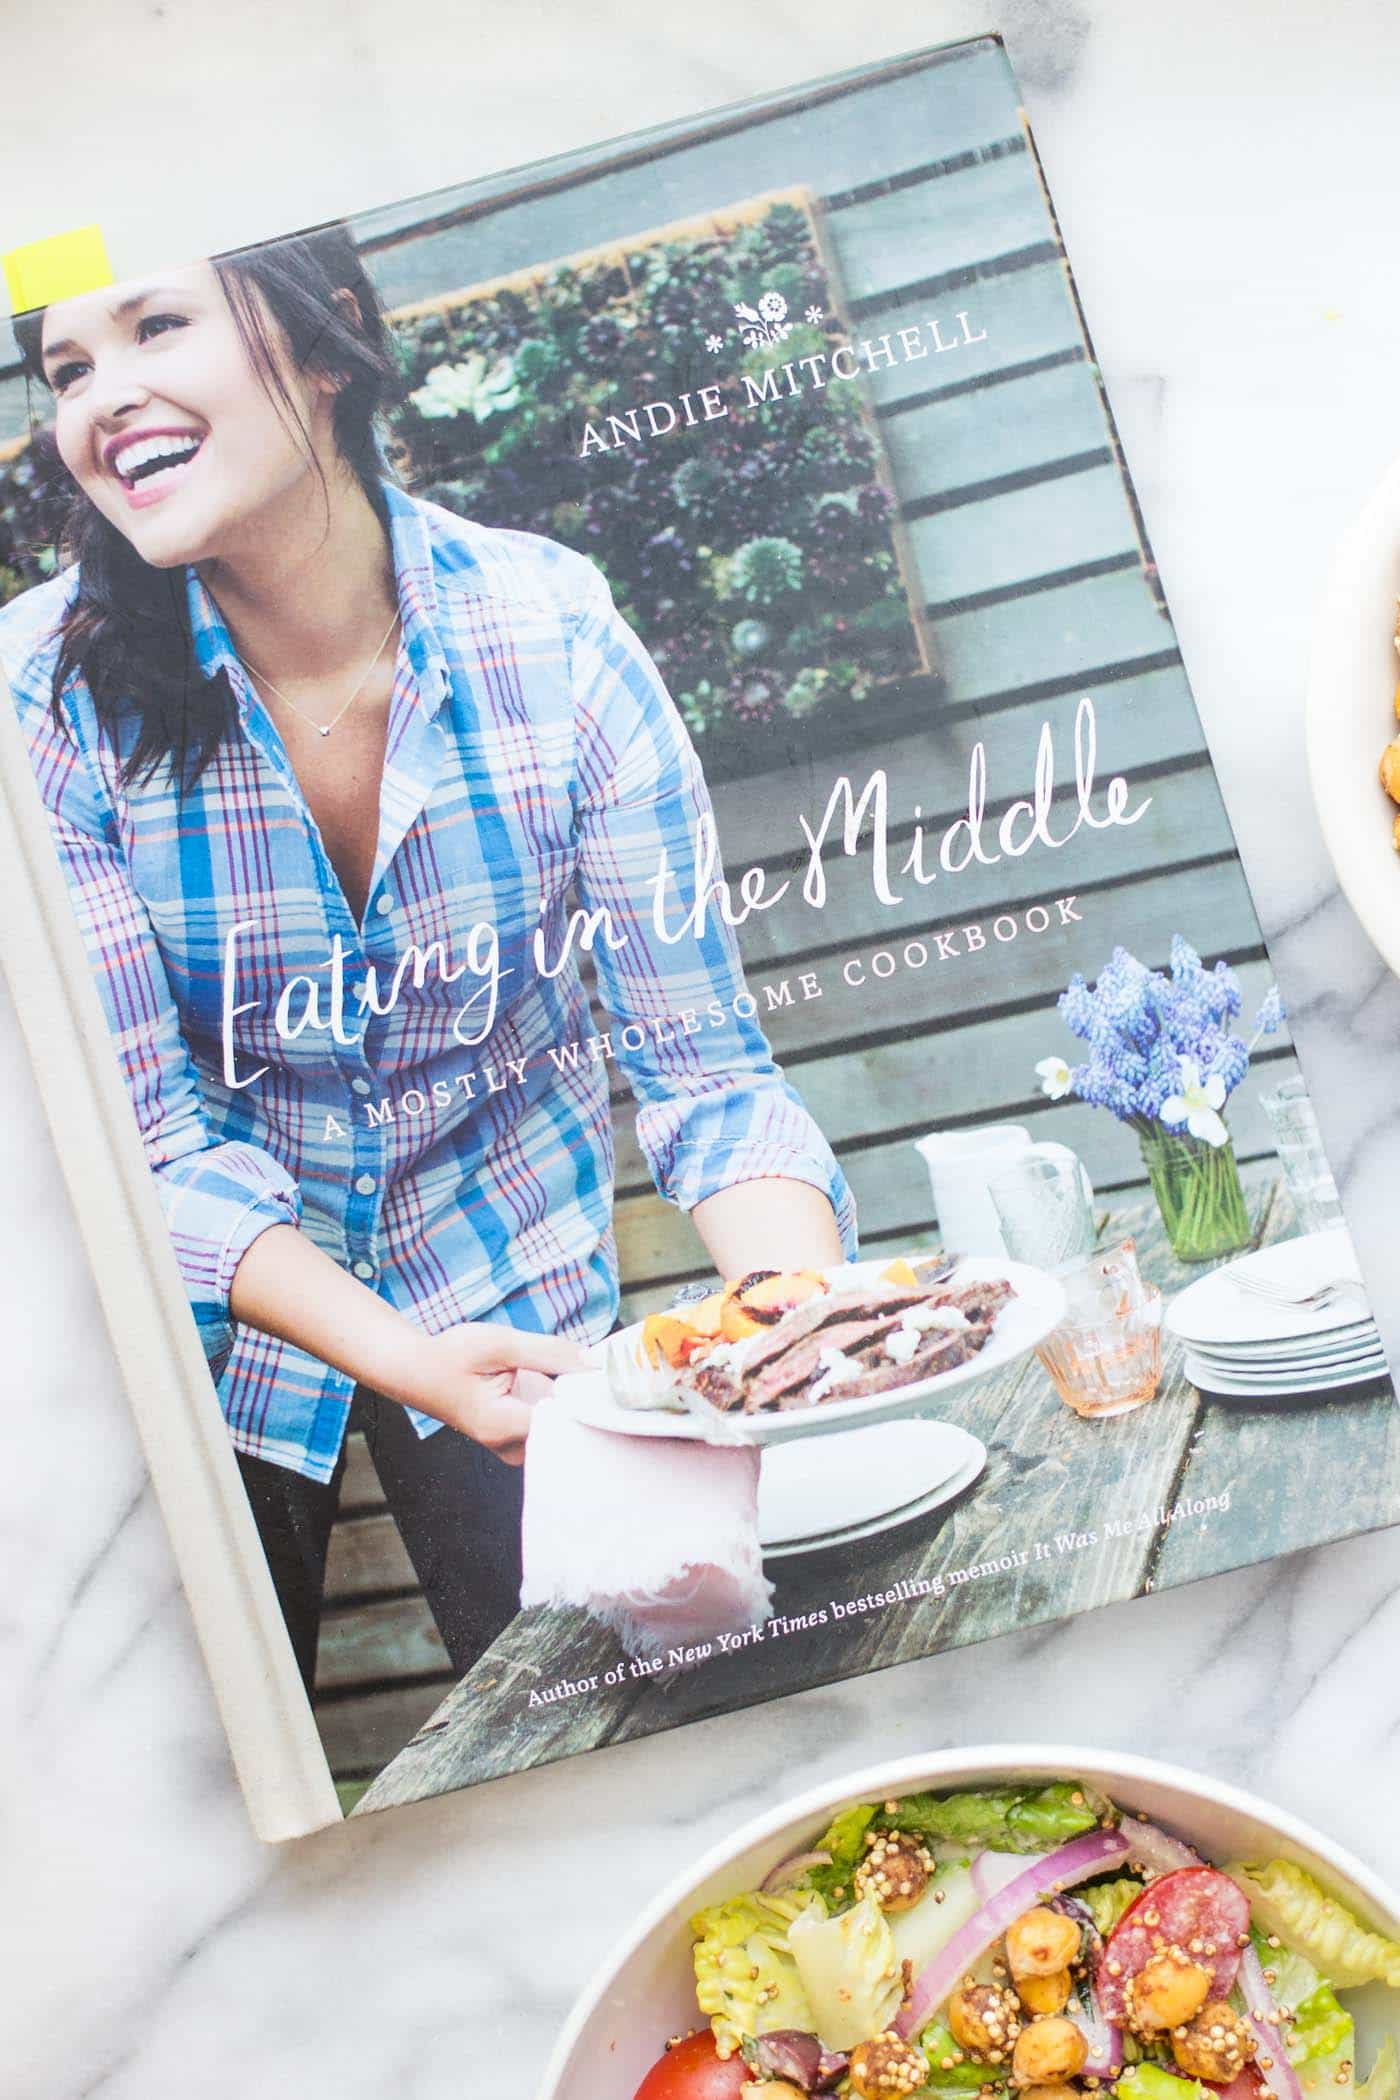 Eating in the Middle -- a brand new cookbook from Andie Mitchell